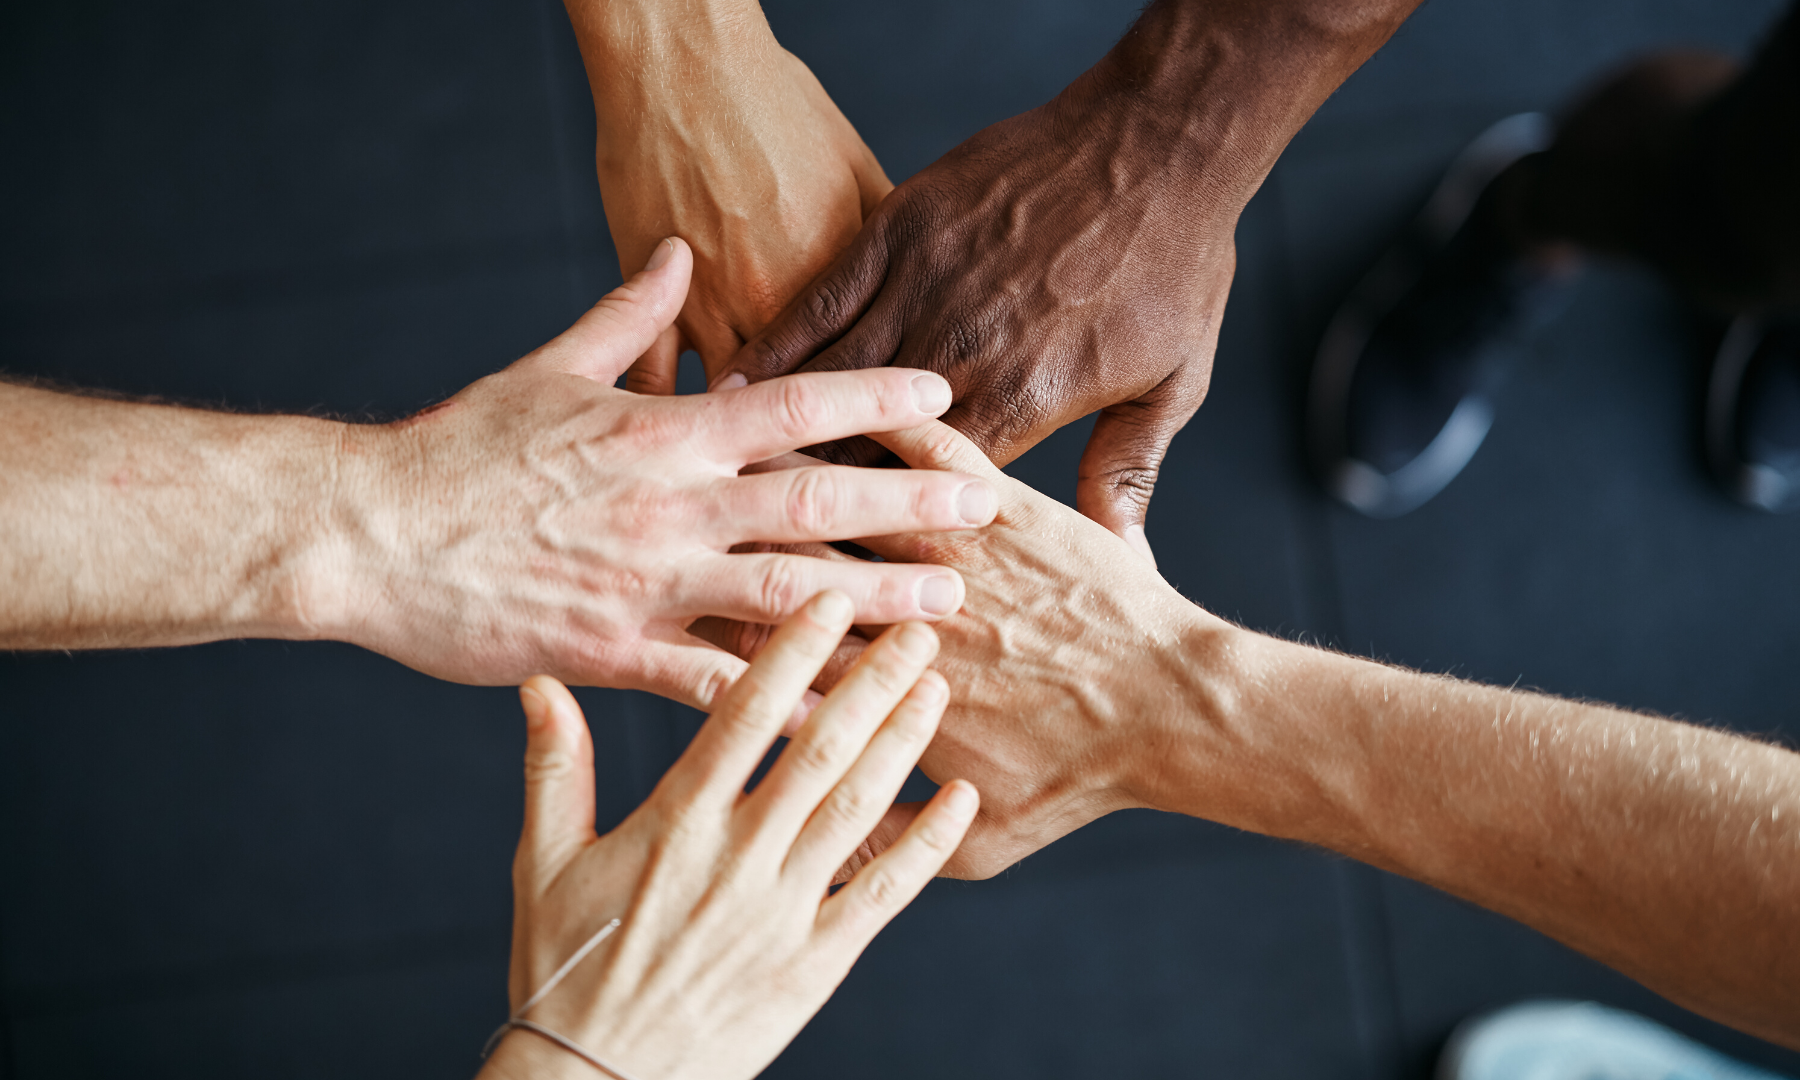 Five hands of different skin colour holding together as a team